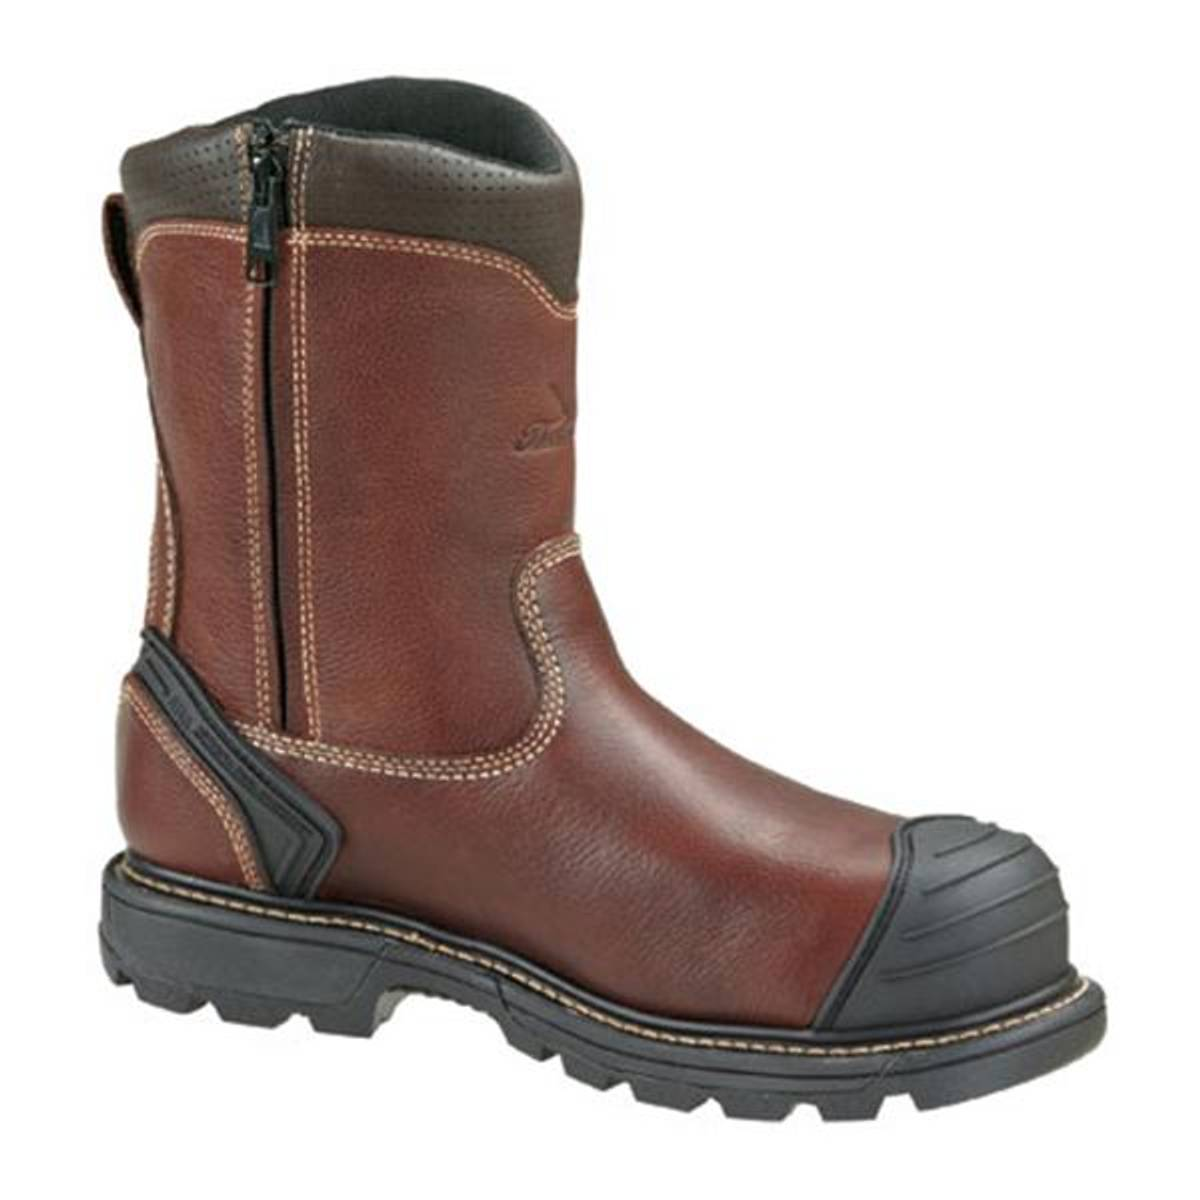 49205107153 Shoes and Boots | Blain's Farm and Fleet